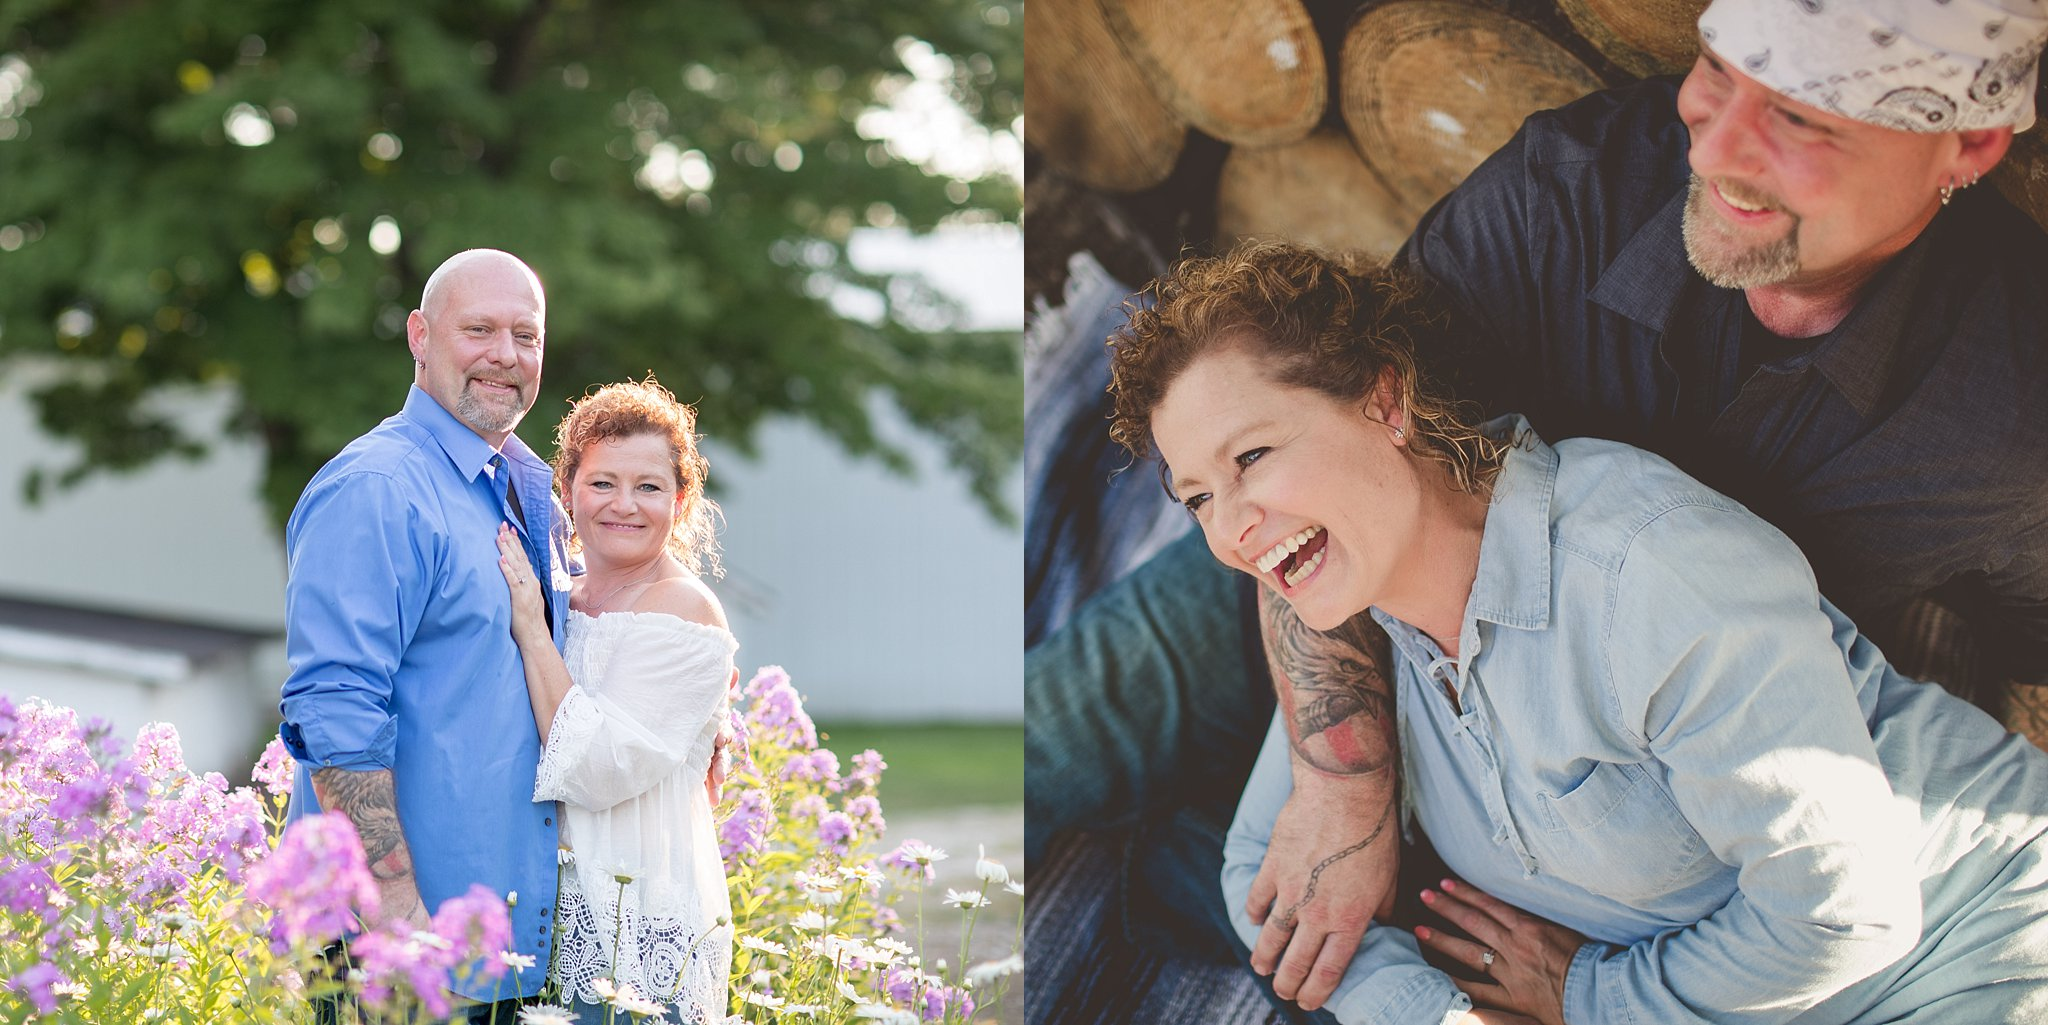 Benée + Mark | Engagement Session | La Porte, IN | Toni Jay Photography